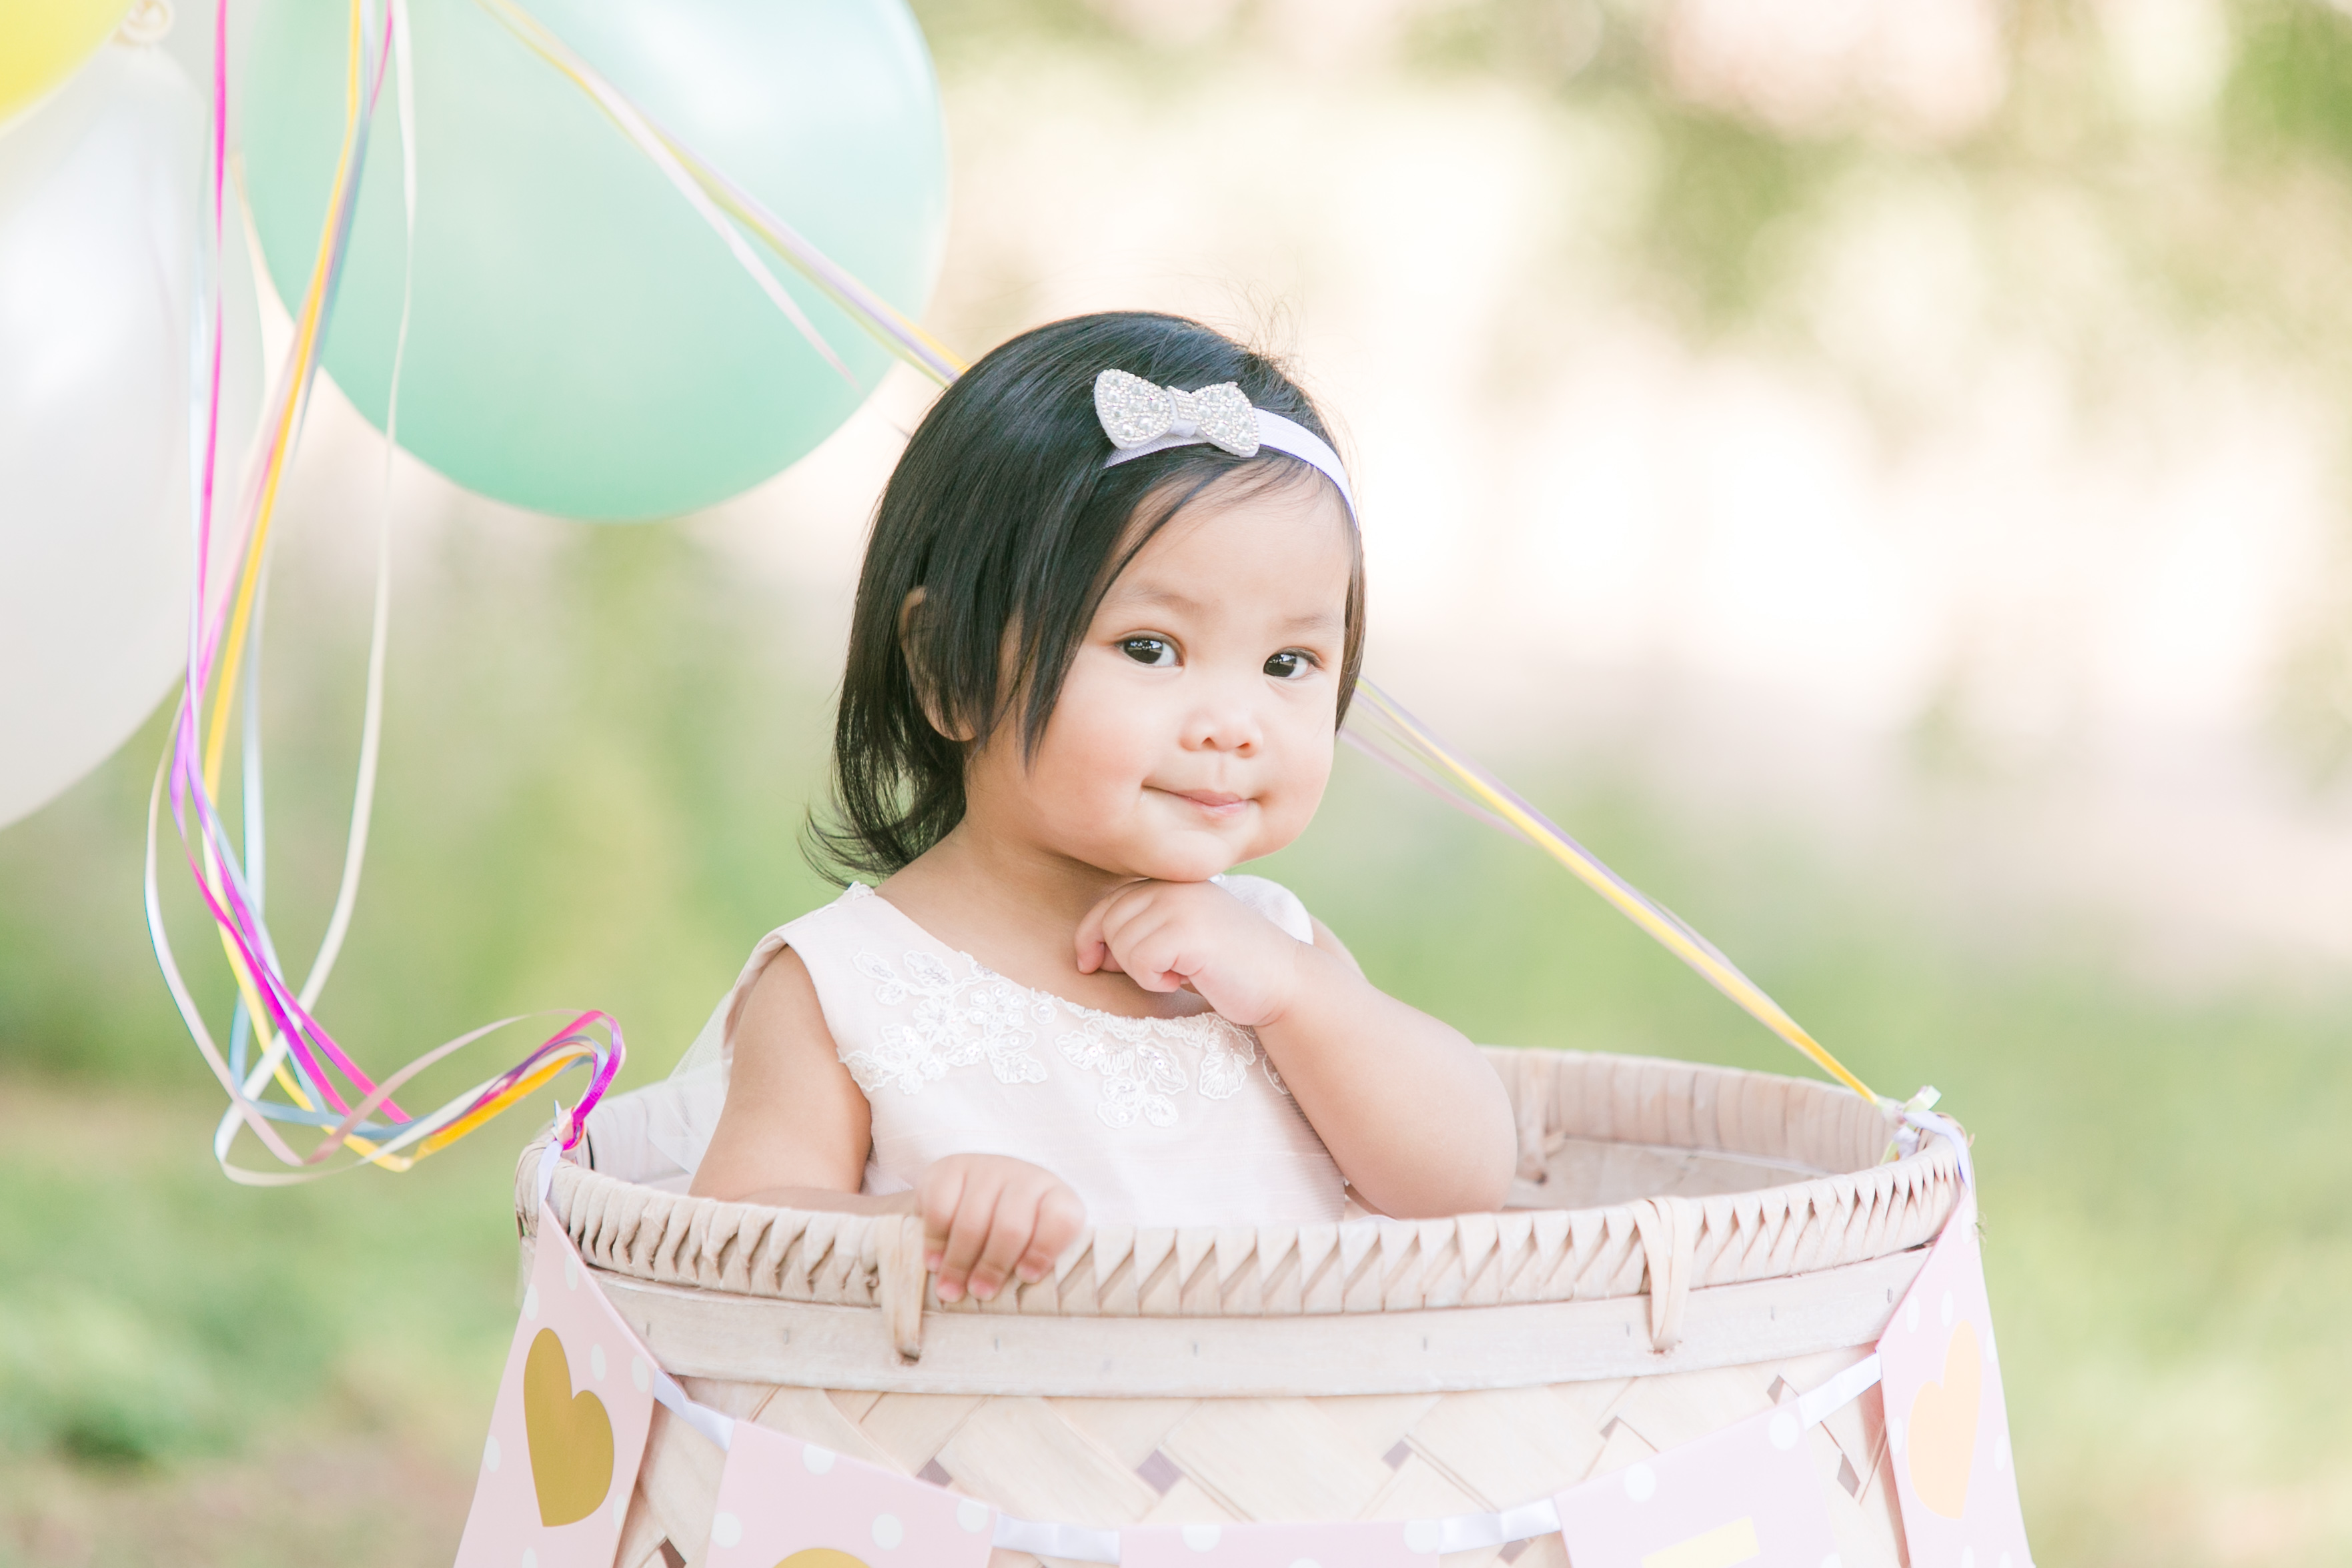 NEMA Photography J.Pham066 - Baby Justine // One year old portraits